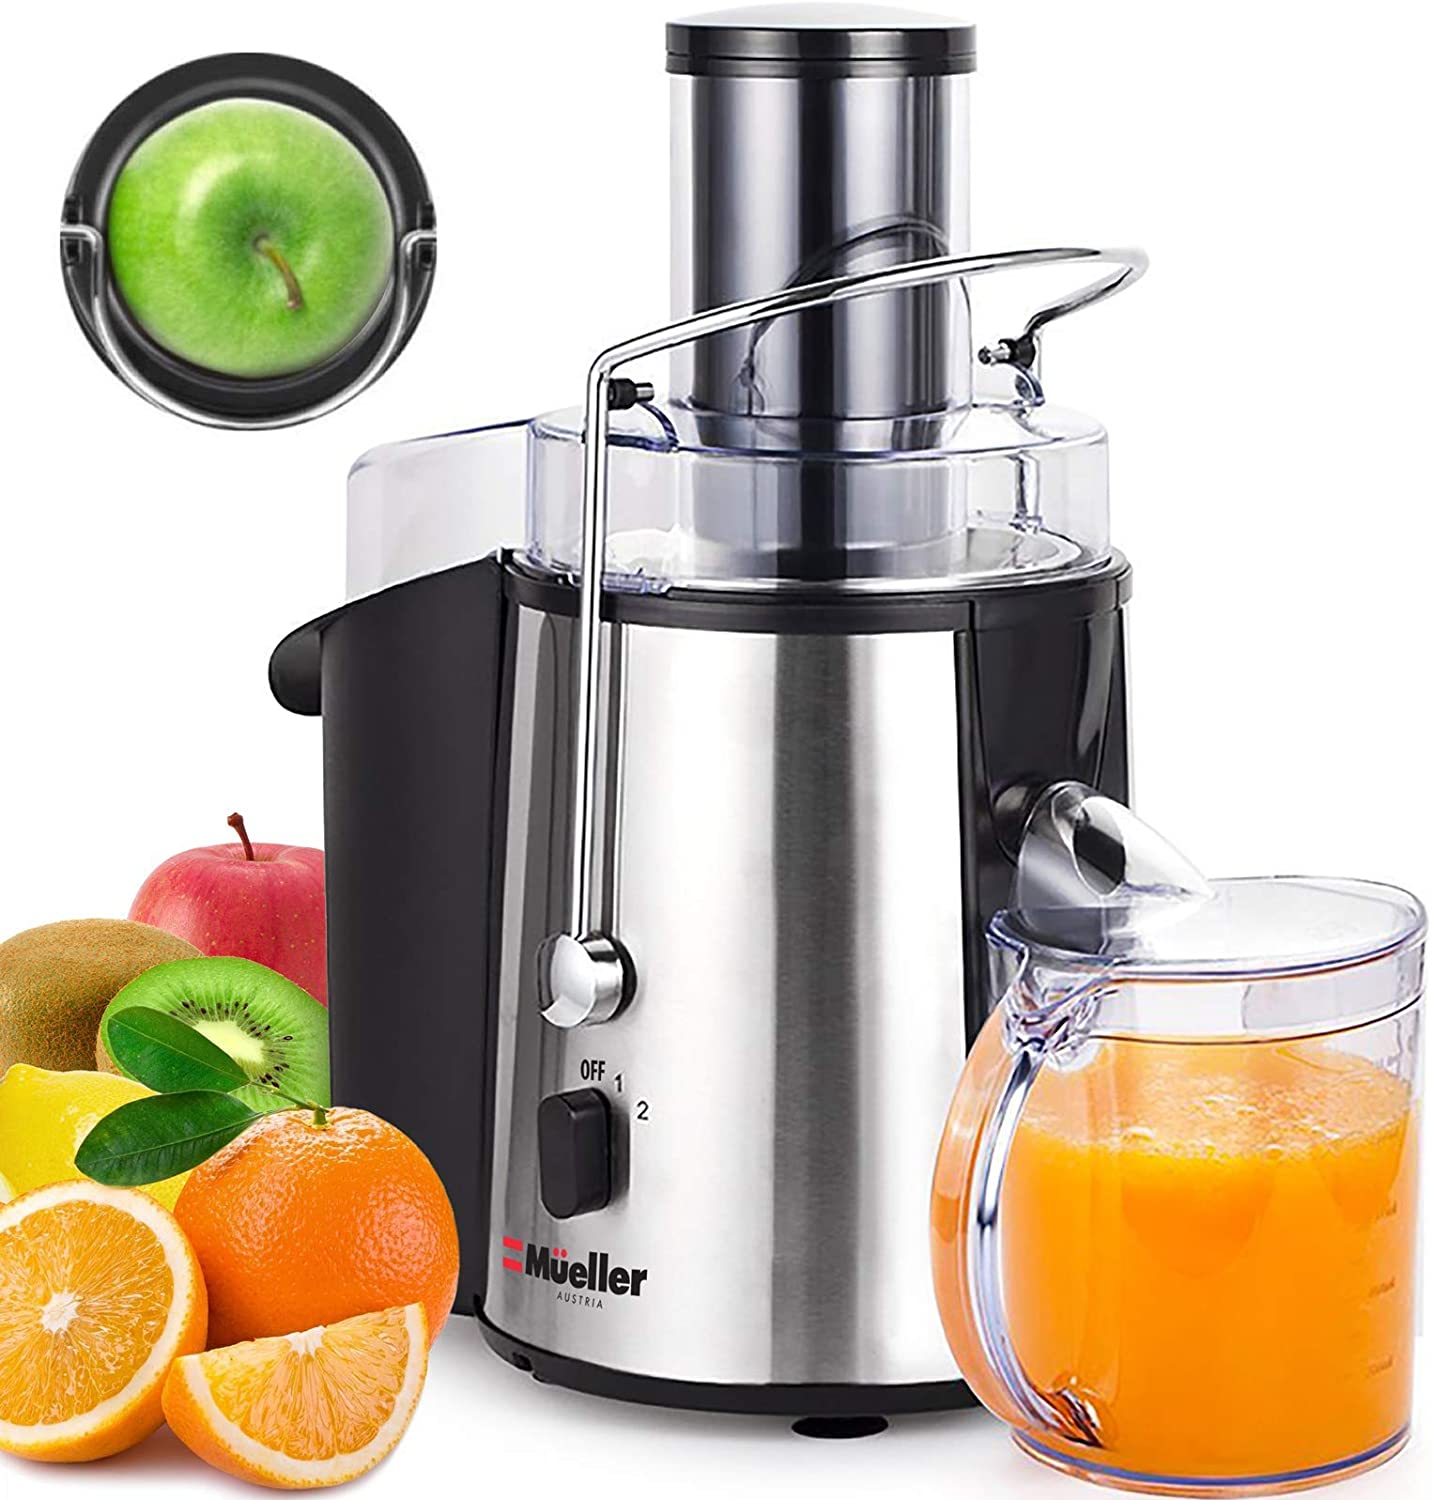 71lC vqoIfL. AC SL1500 Best Juicer for Carrots 2021 - Reviews & Buying Guide